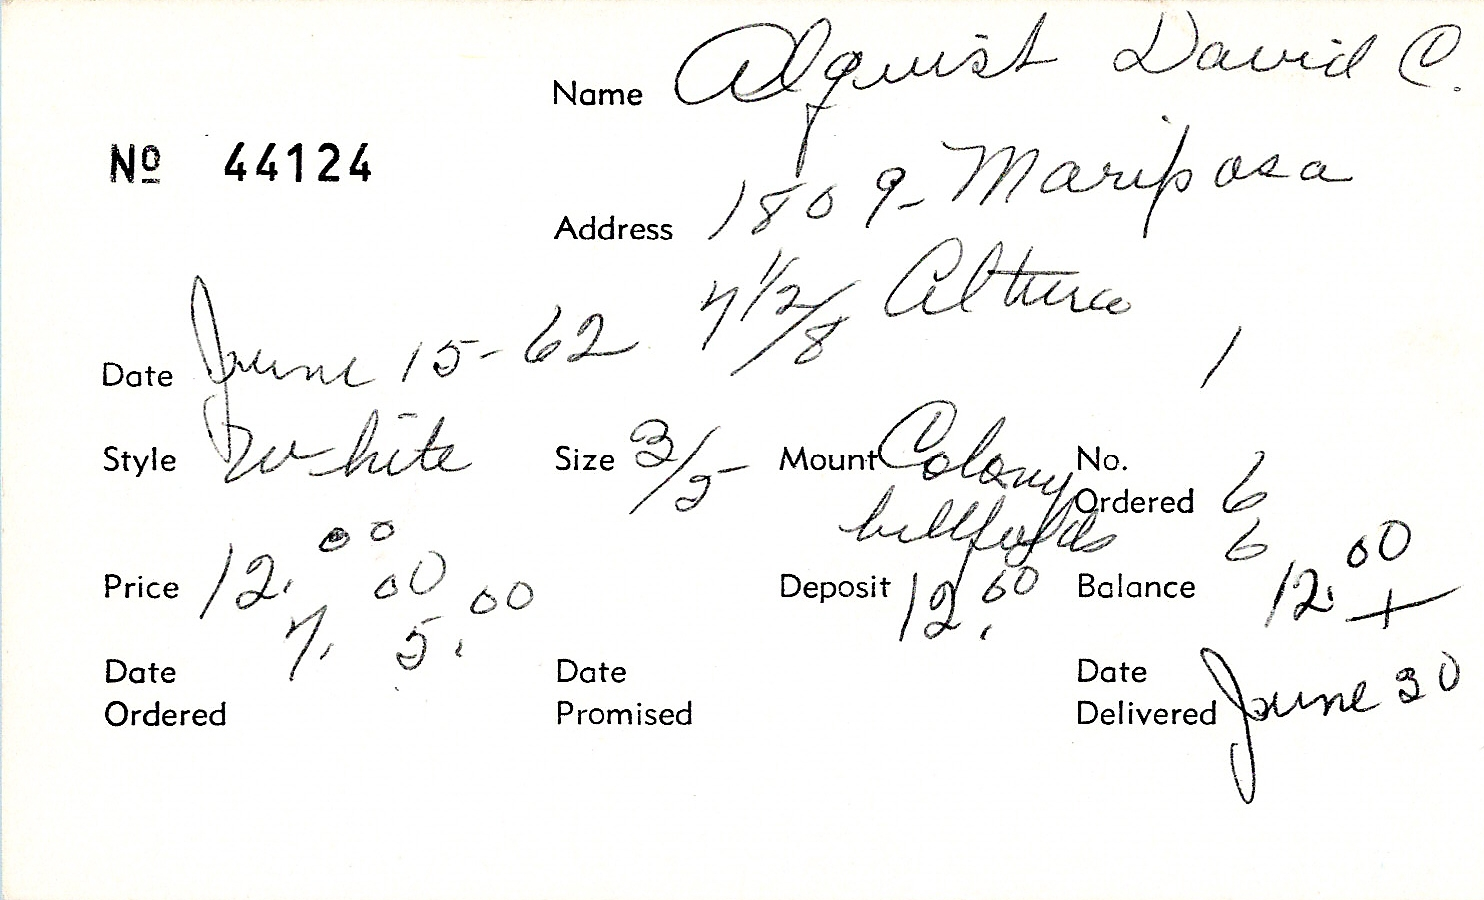 Index card for David C. Alquist